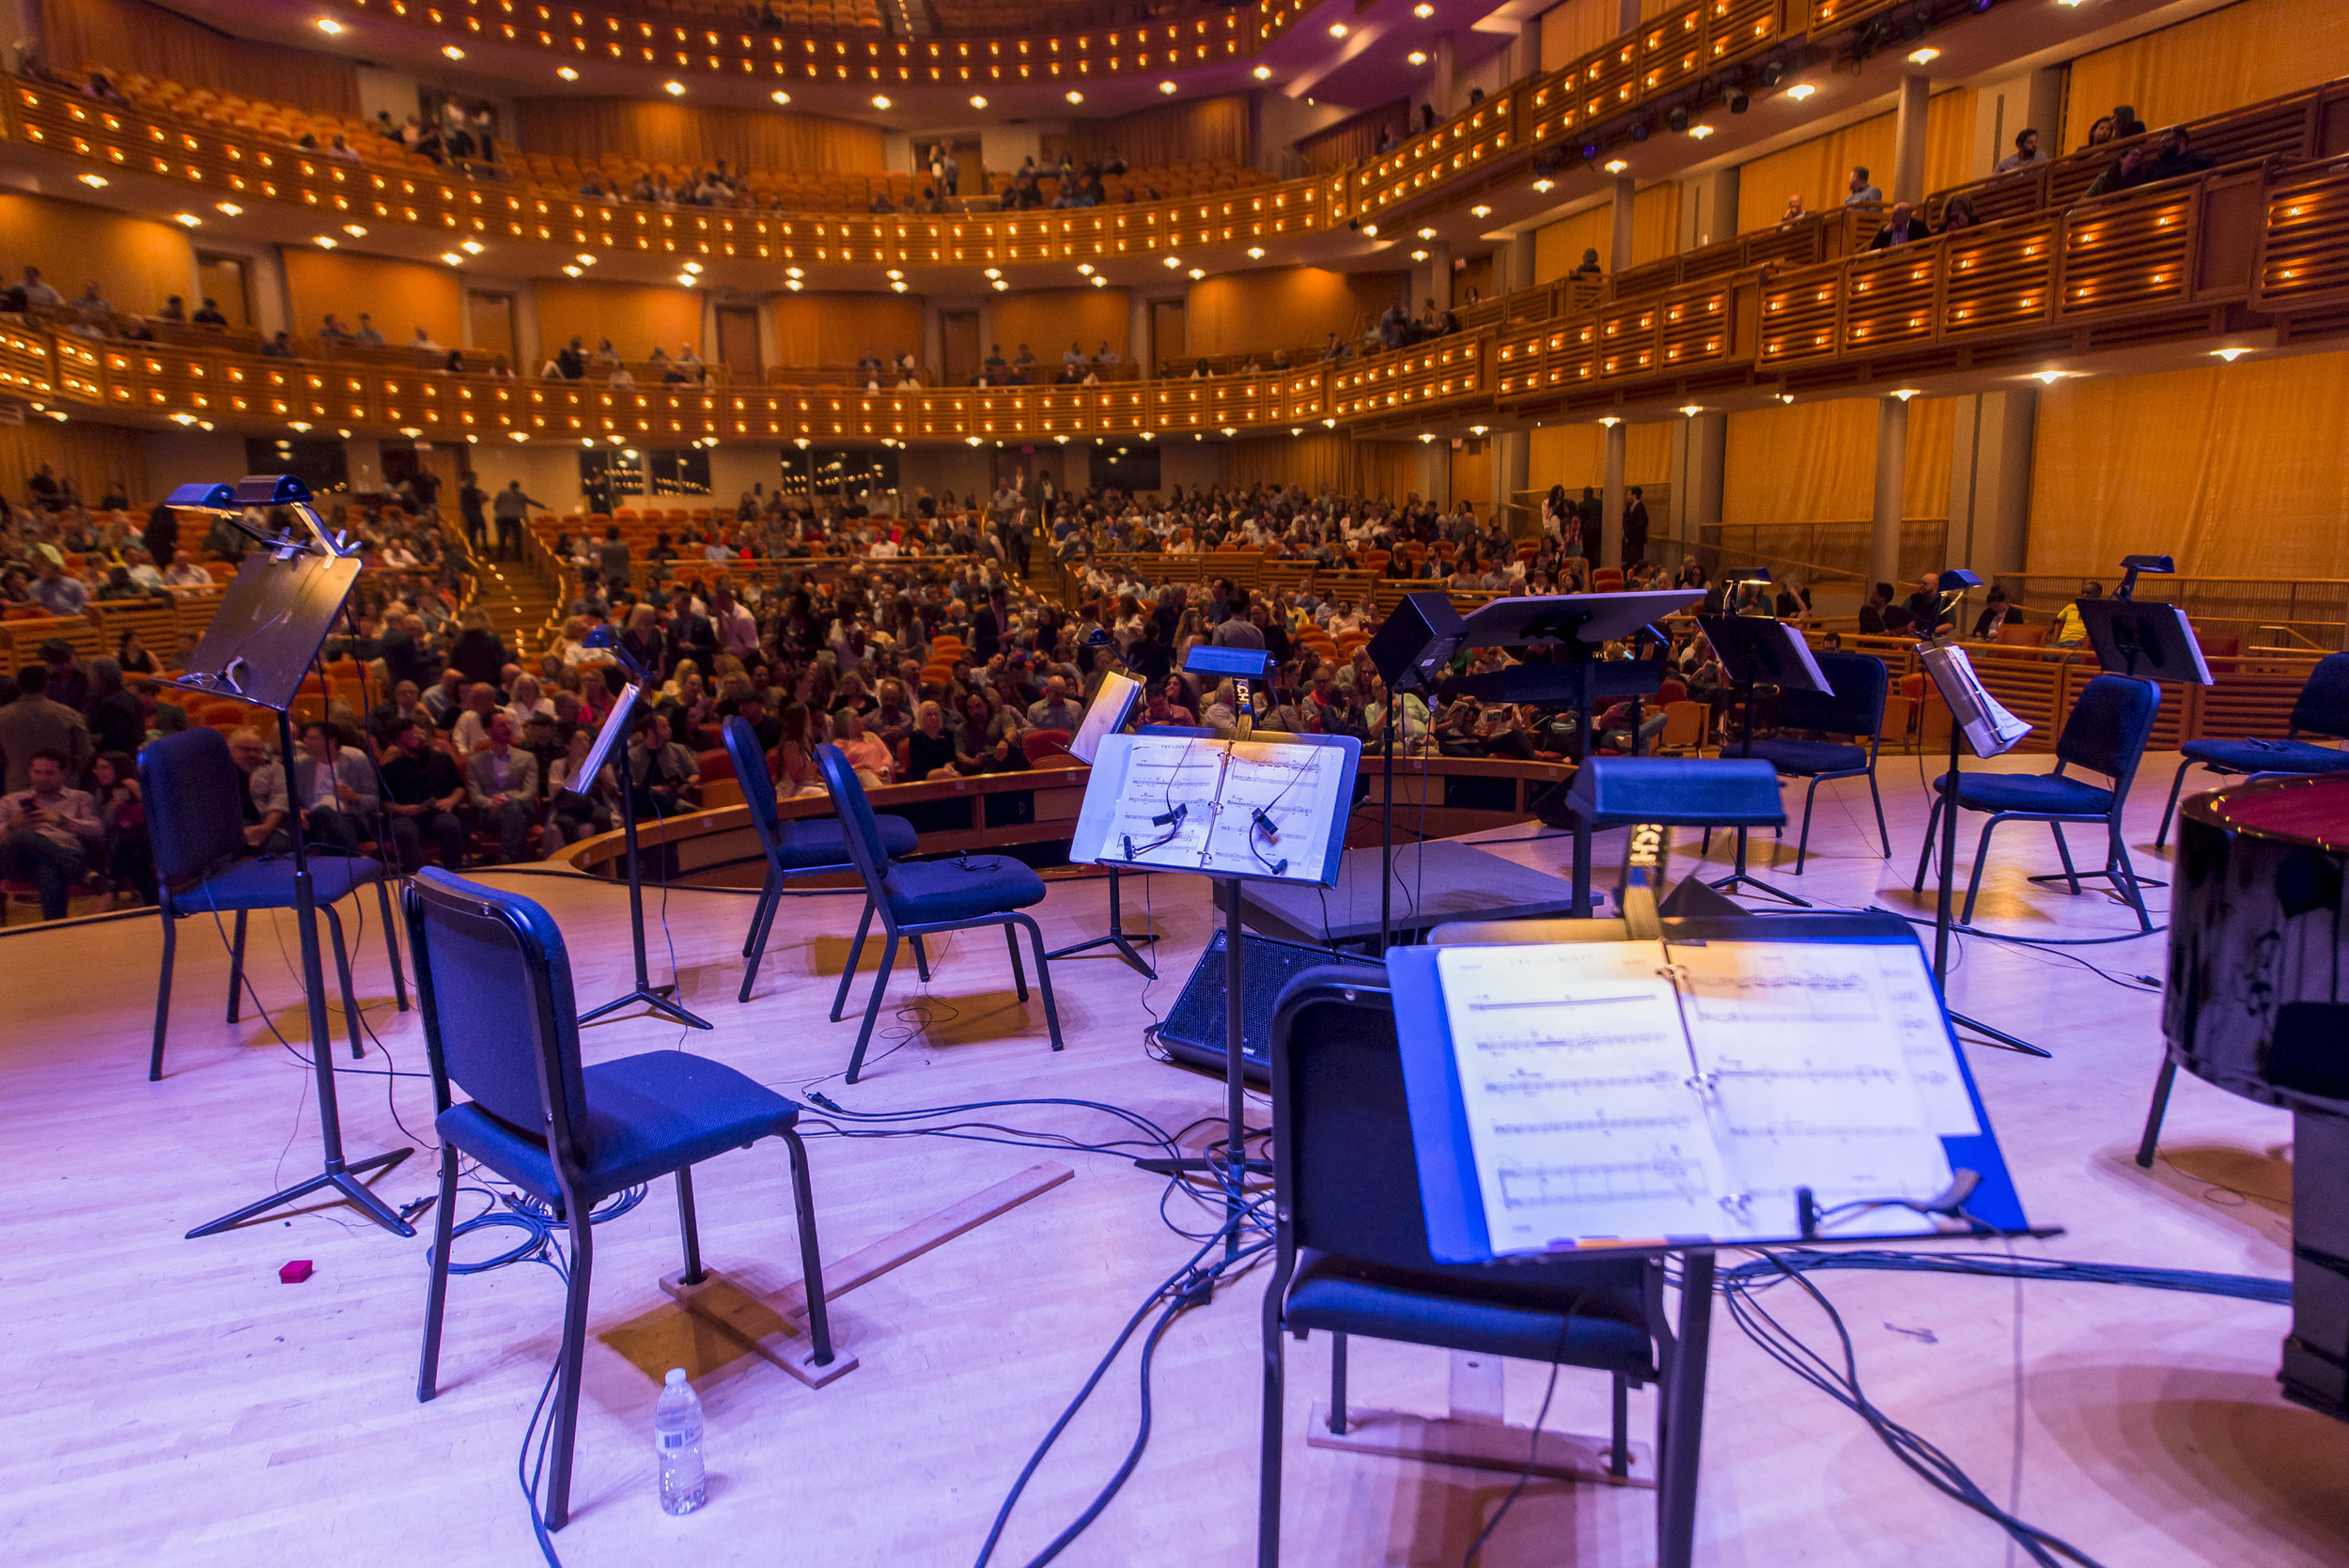 2018_03_29 Nu Deco with Ben Folds at Arsht-3258.jpg